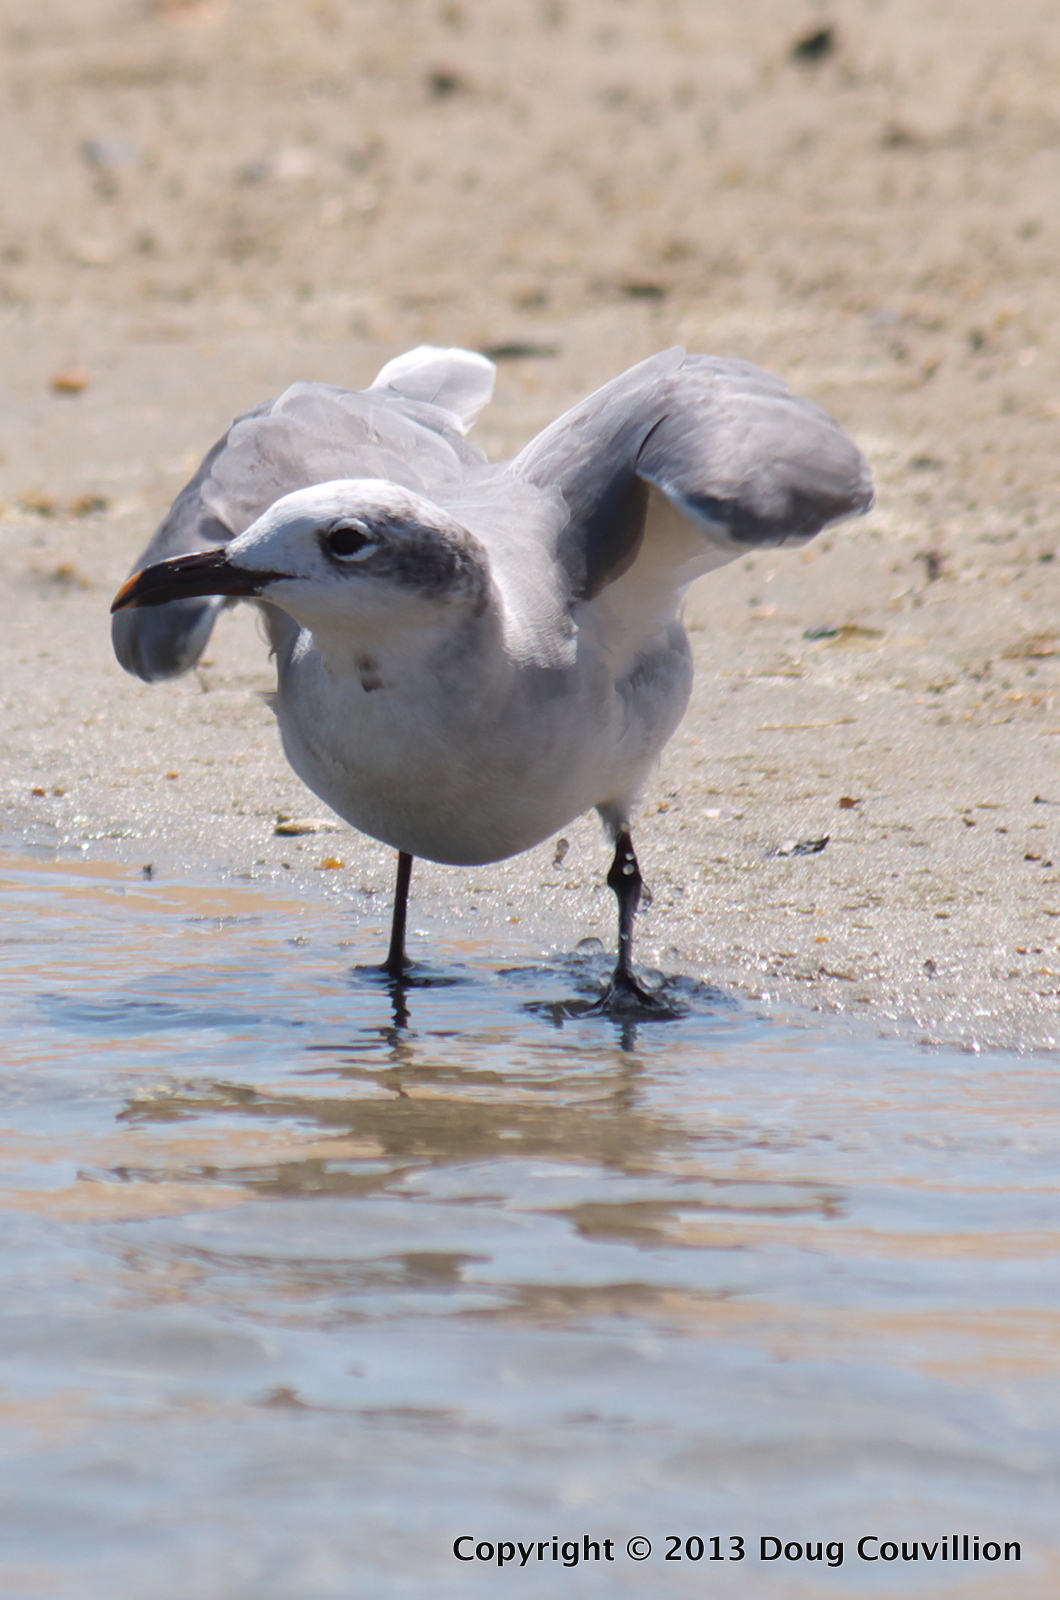 photograph of a juvenile laughing gull in North Carolina